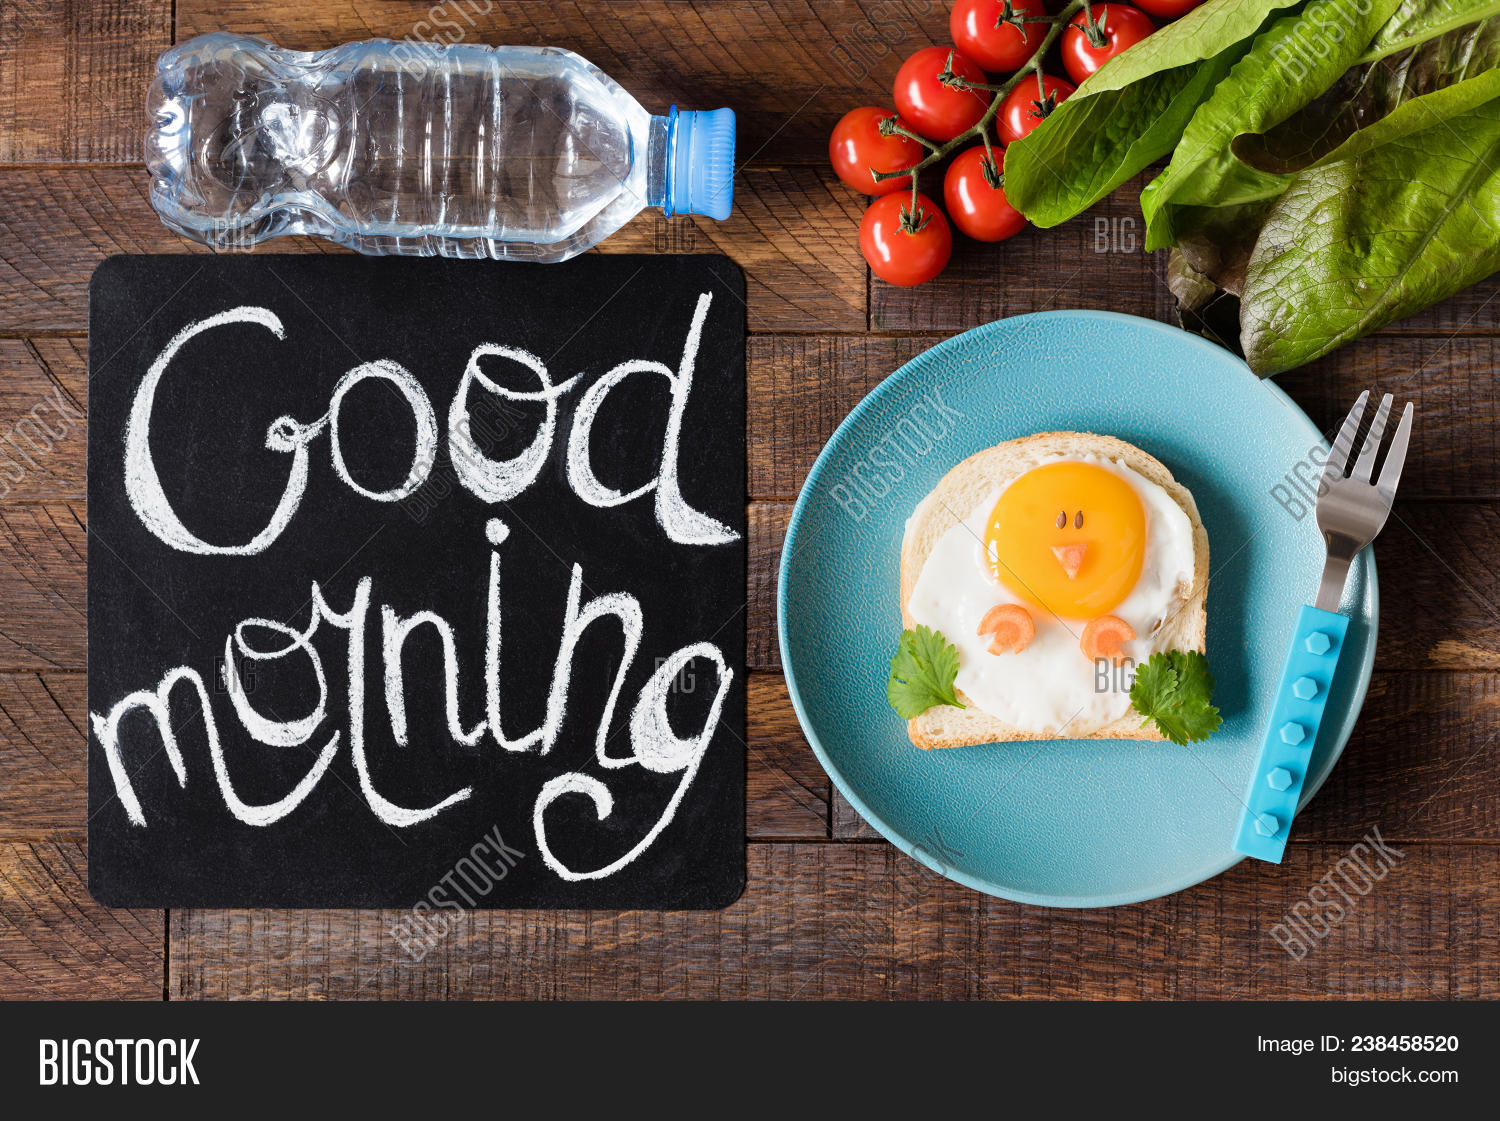 Good Morning Breakfast Image Photo Free Trial Bigstock